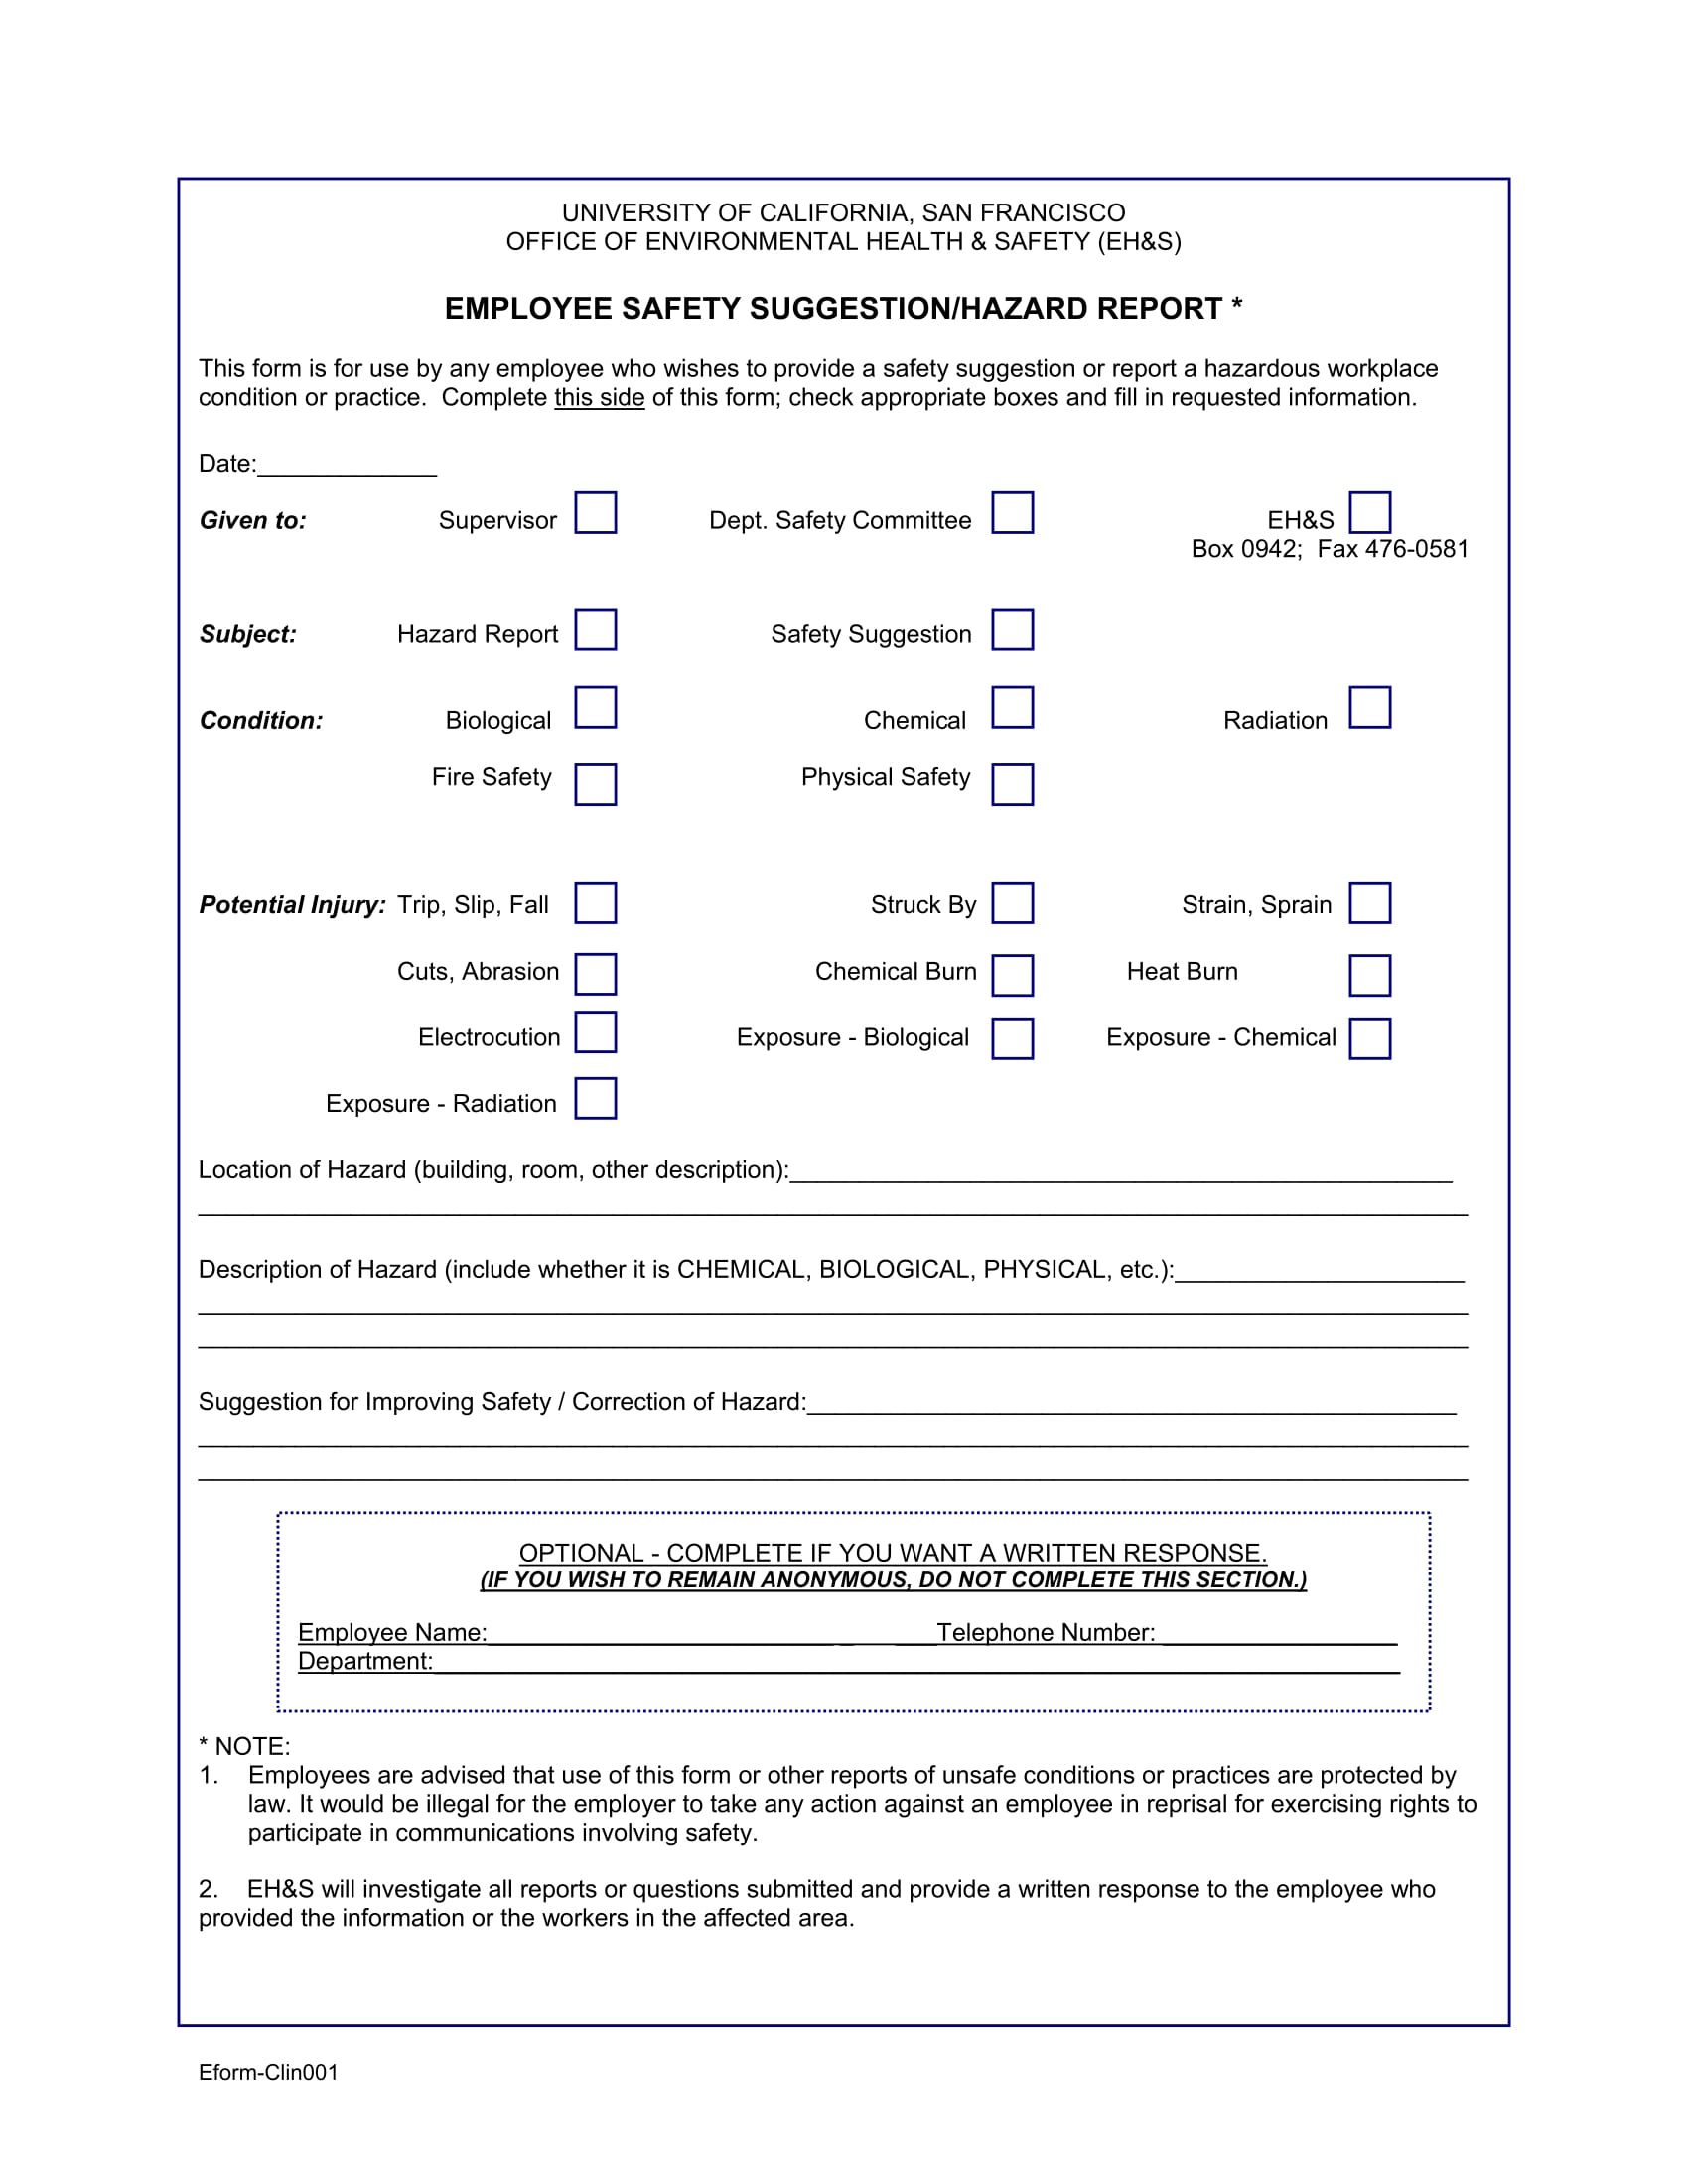 employee safety suggestion form 1